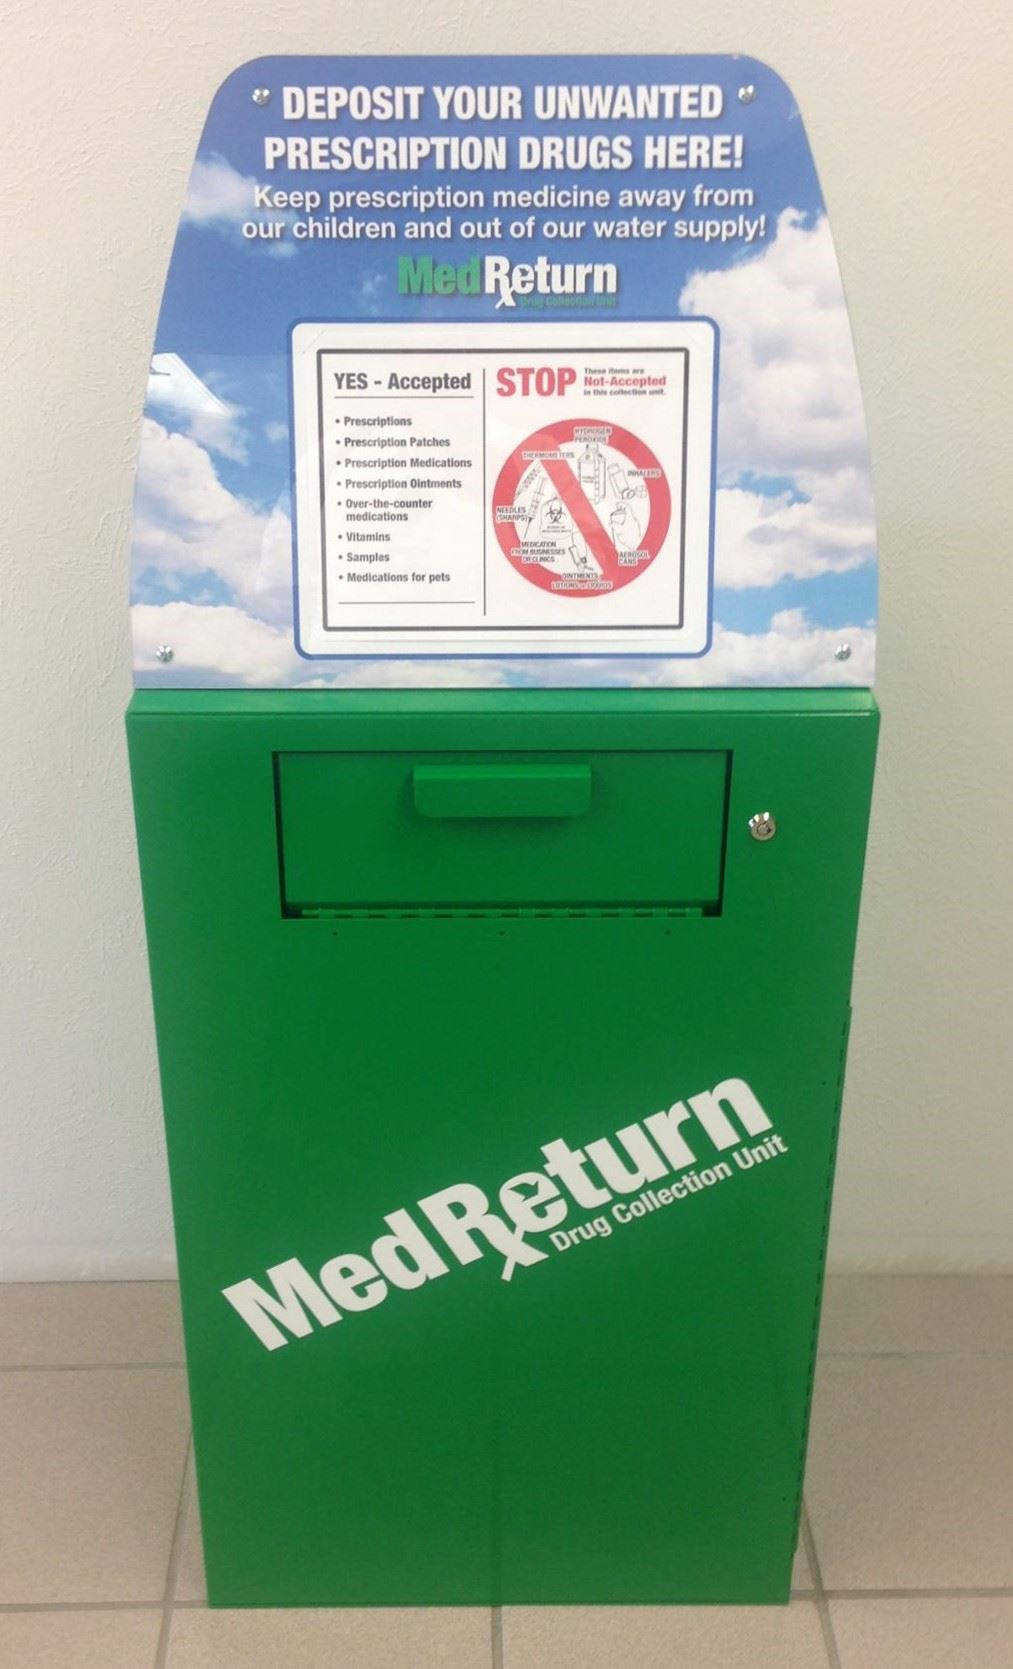 Med Return Drug Collection Box